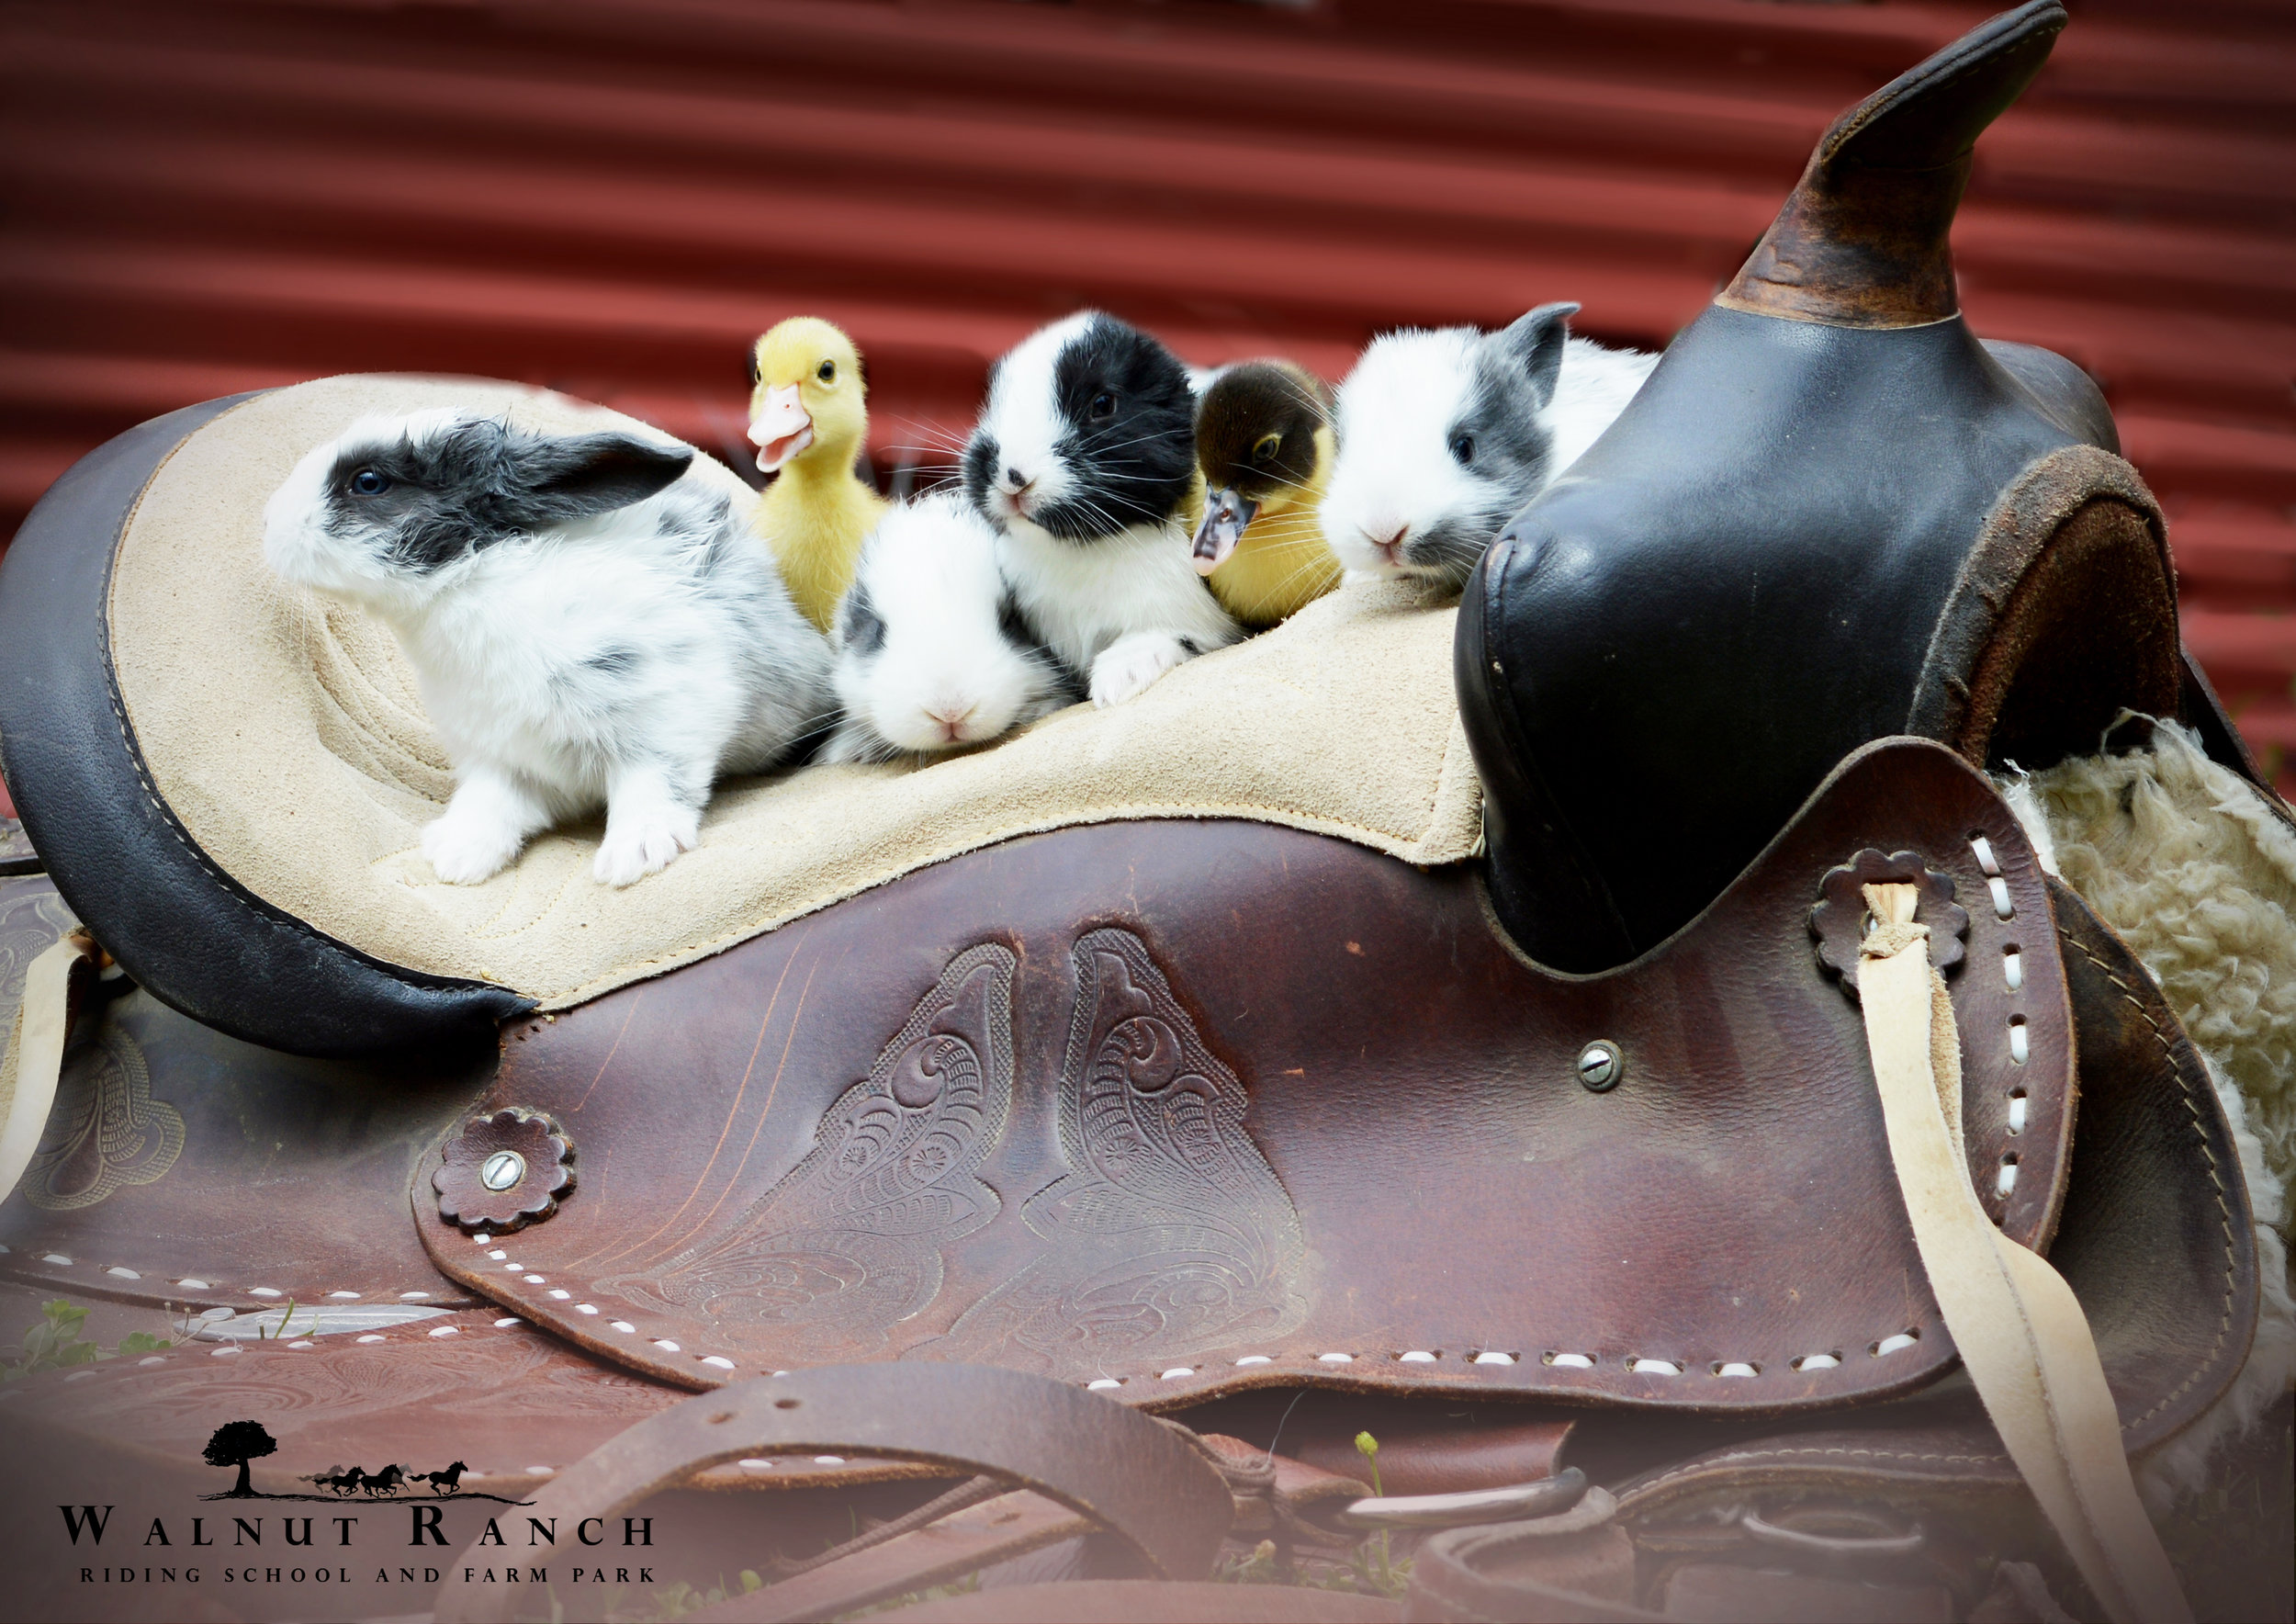 Ducklings and Bunnies on the Saddle